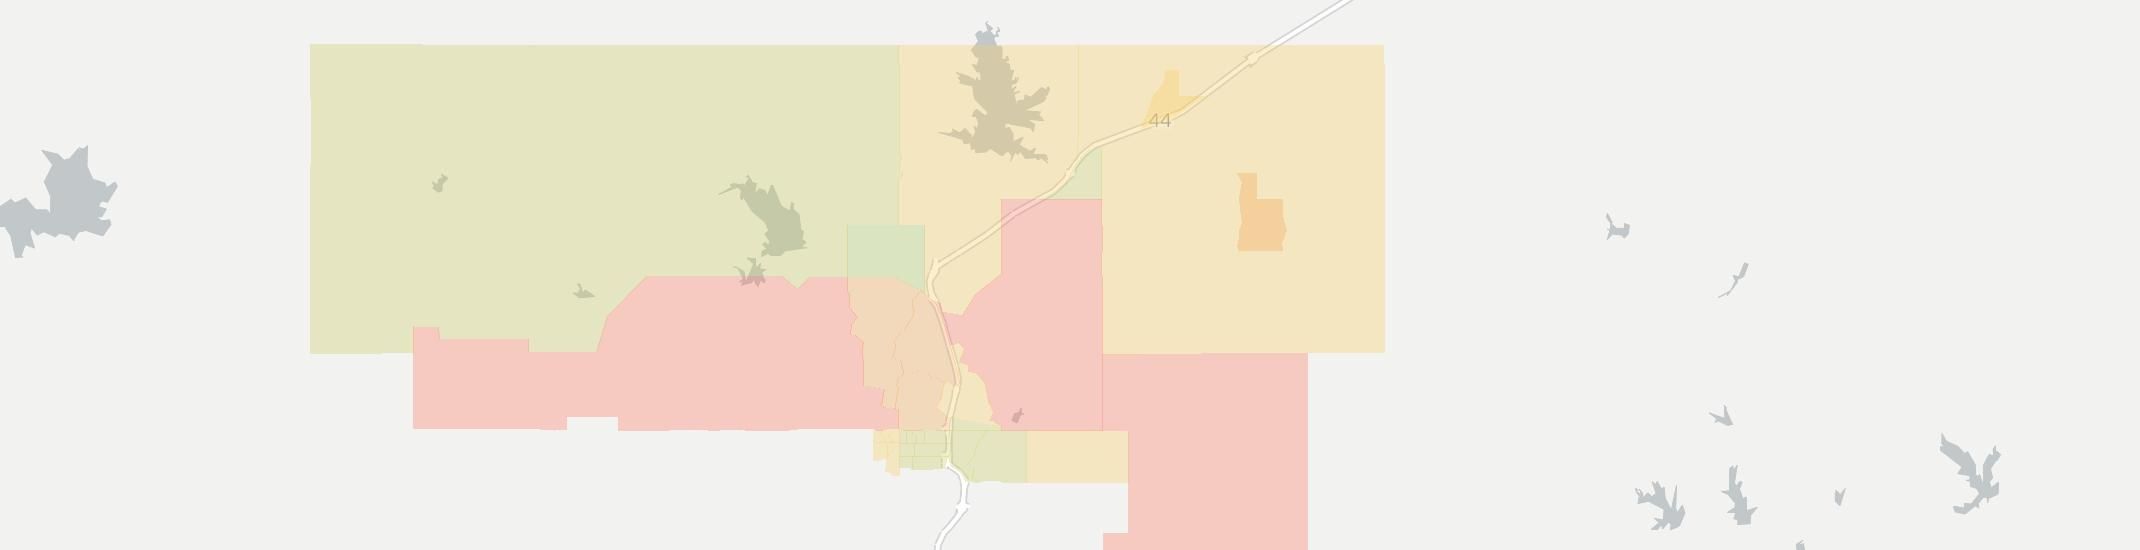 Elgin Internet Competition Map. Click for interactive map.